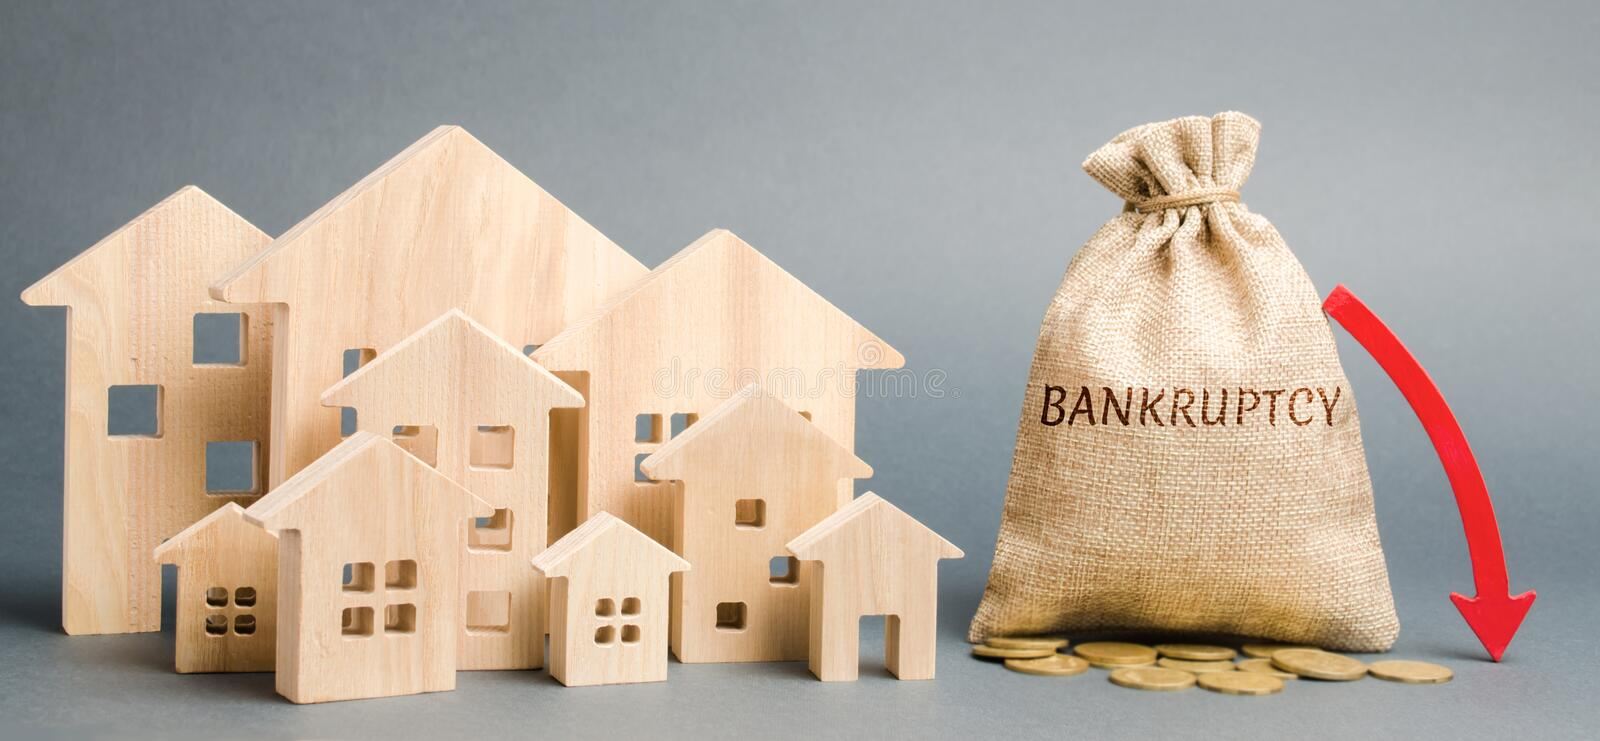 A money bag with the word Bankruptcy, a down arrow and wooden houses. Bankruptcy auction. Mortgaged property. Financial collapse. The decline in the real stock image